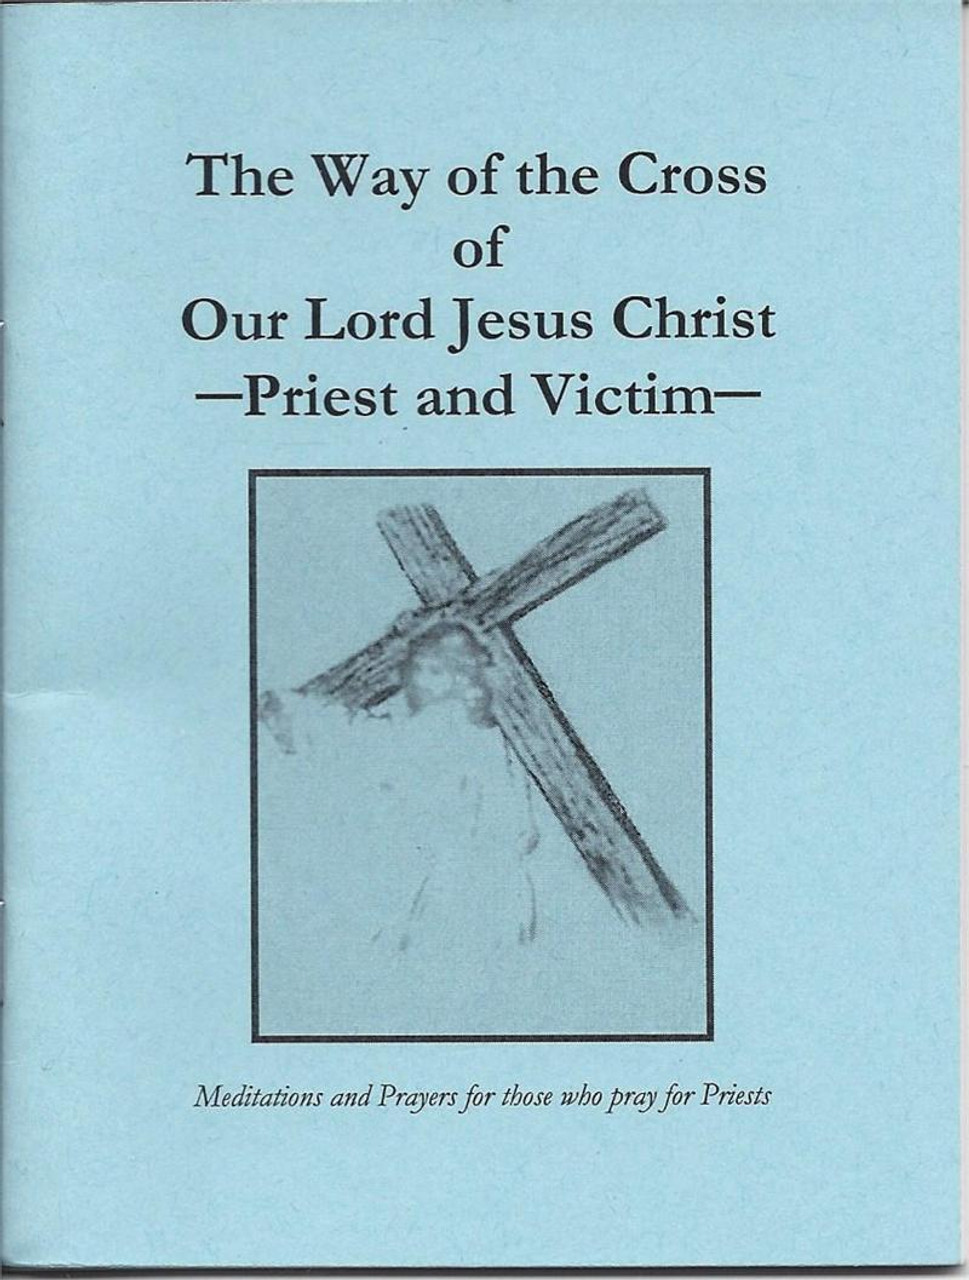 The Way of the Cross of Our Lord Jesus Christ Priest and Victim